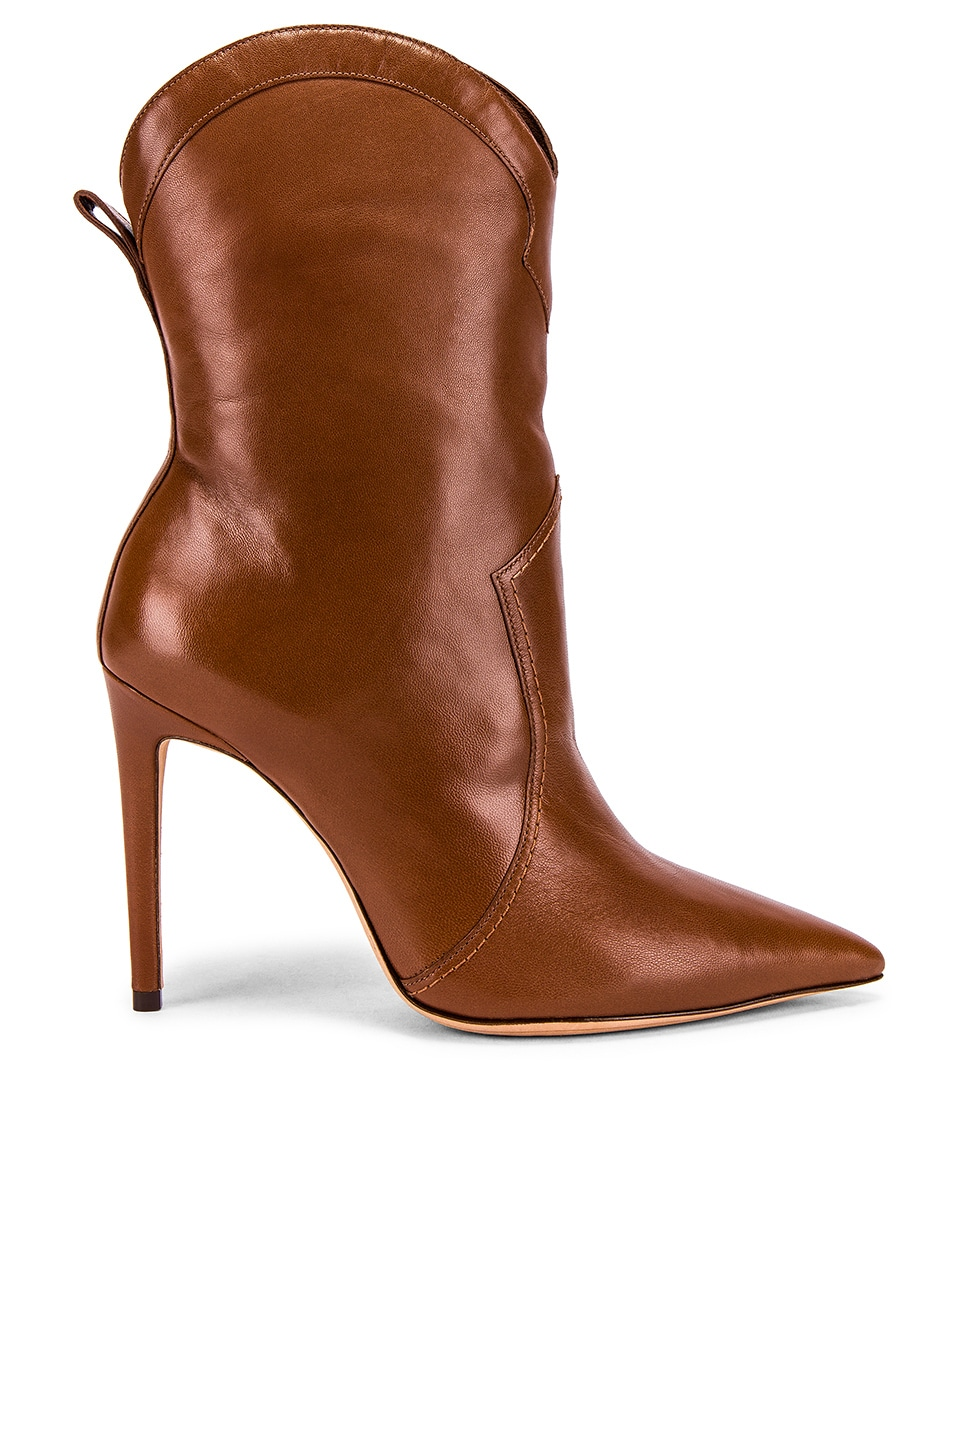 Alexandre Birman Esther Boot in Cognac